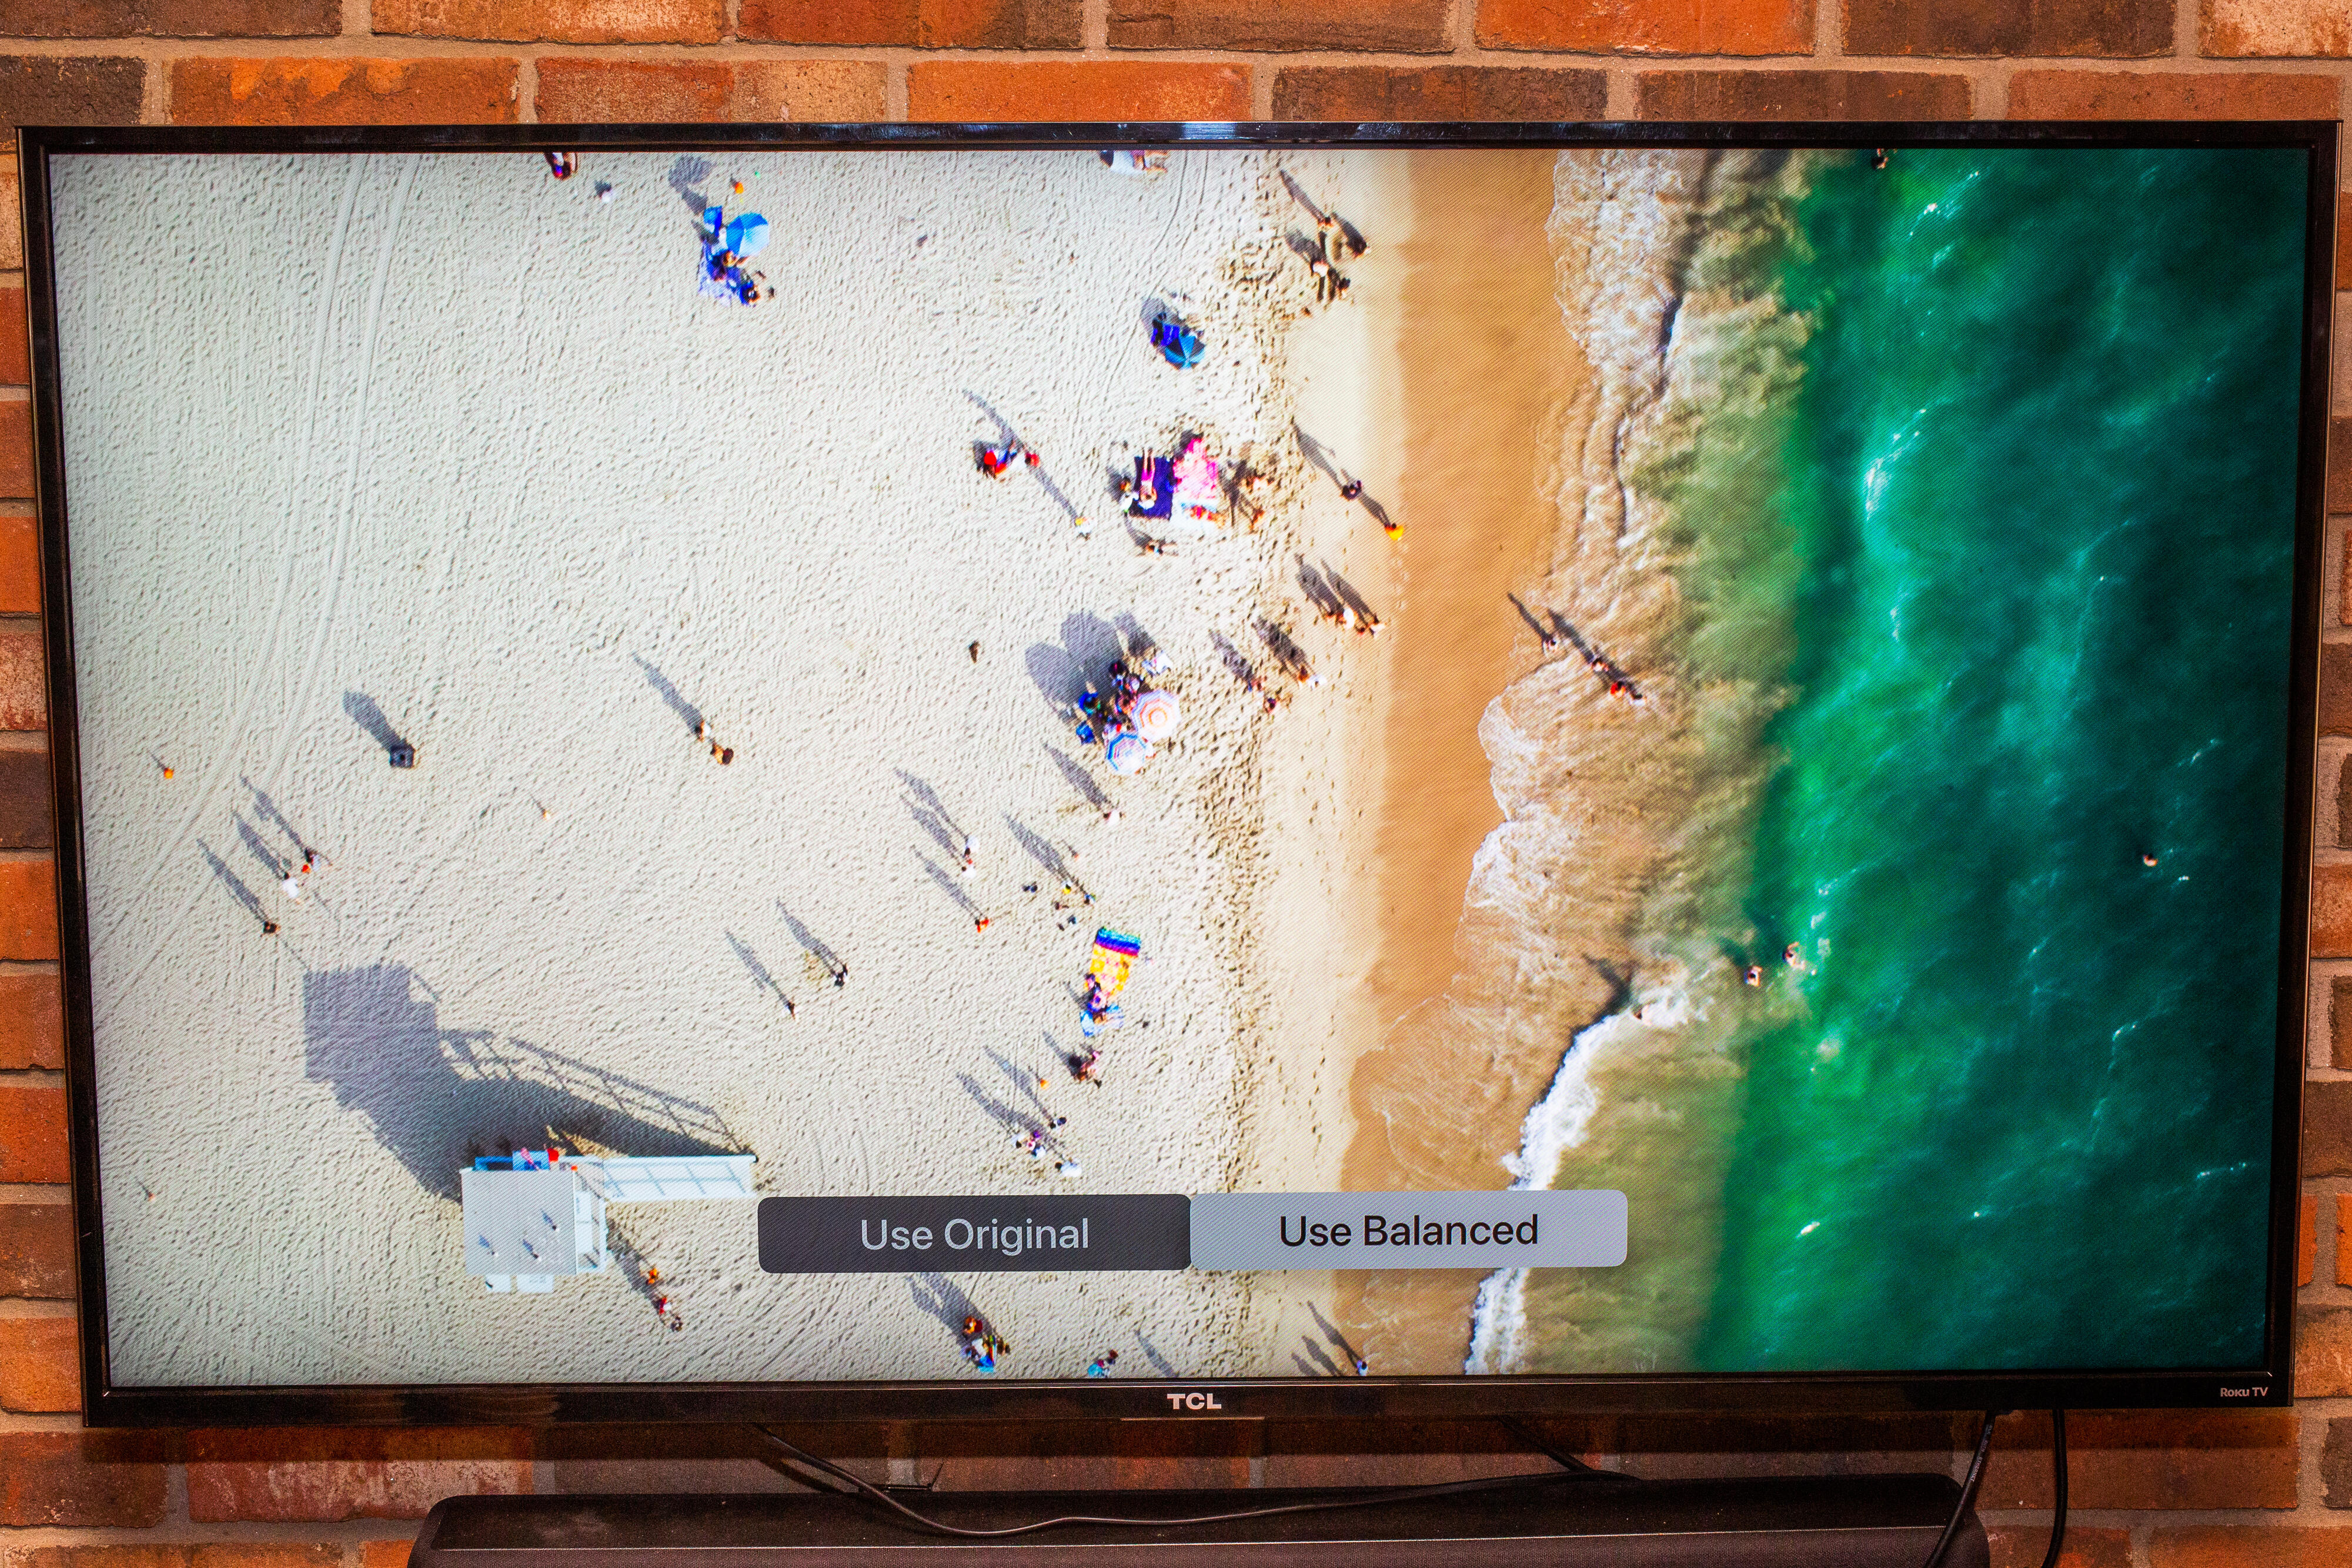 014-apple-tv-screen-calibration-with-ios-14-5-iphone-face-detection-camera